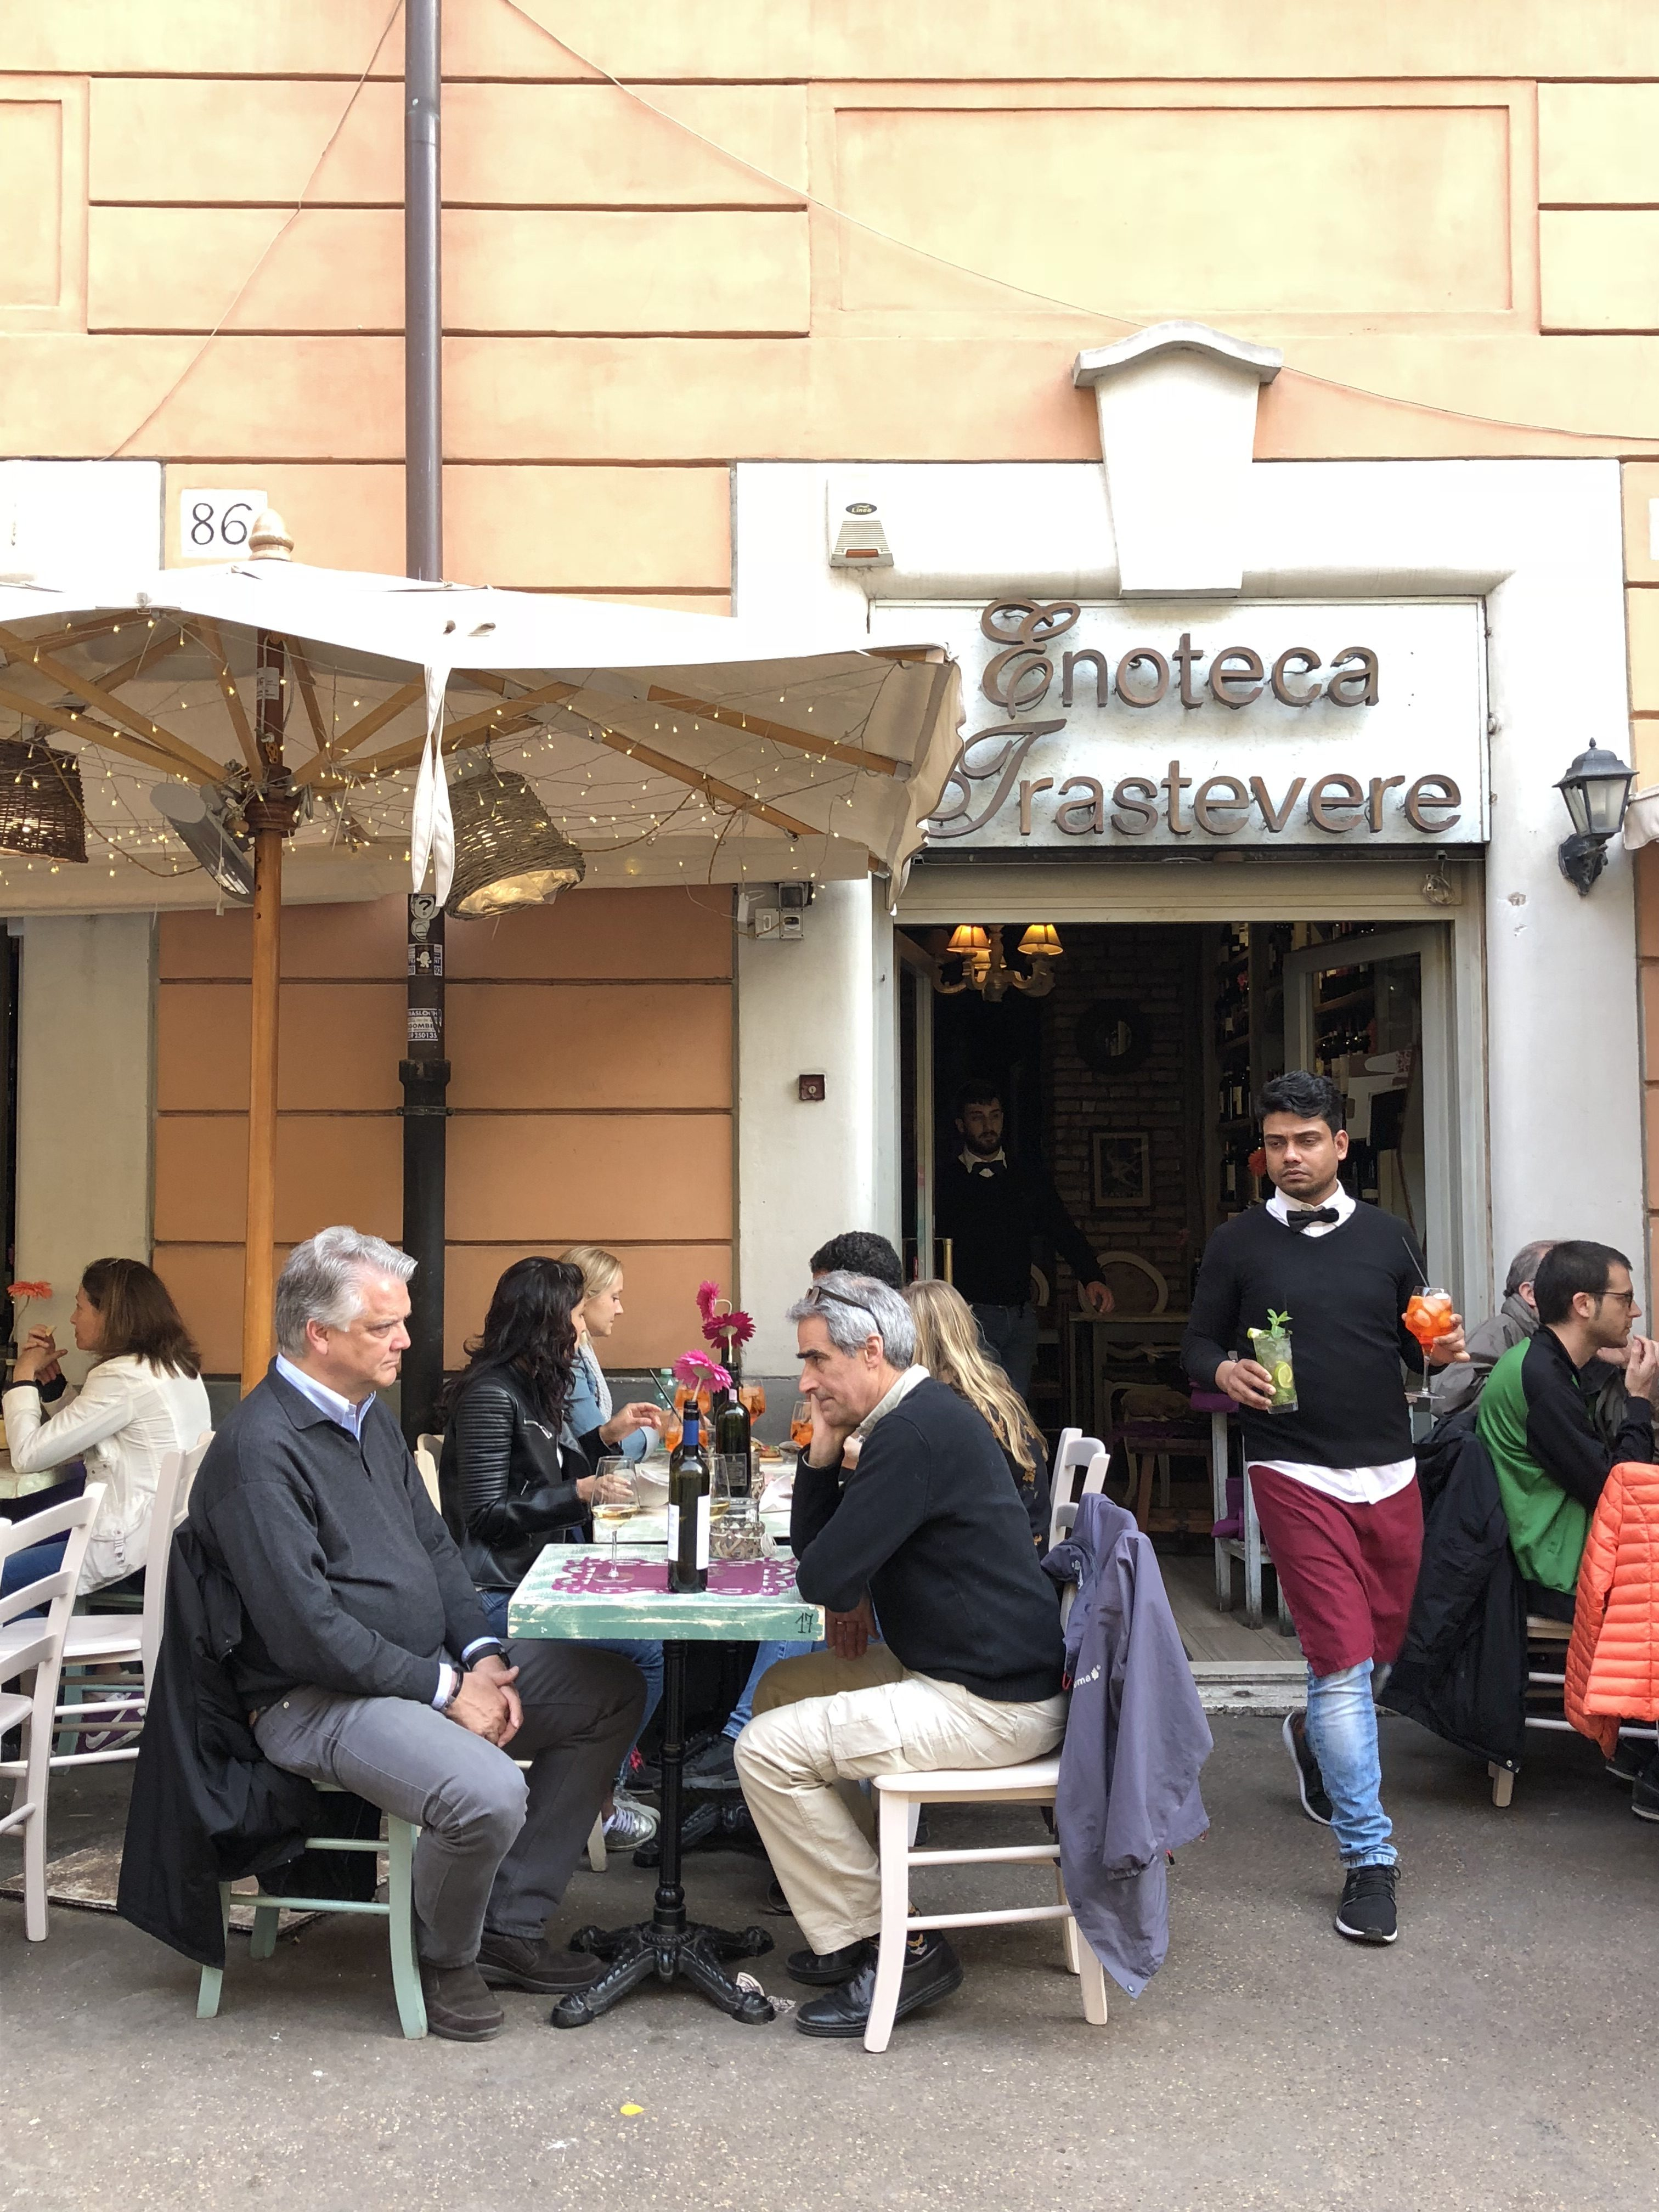 People participate in aperitivo at Enoteca Trastevere on Apr. 15. Photo by Katlyn Campbell